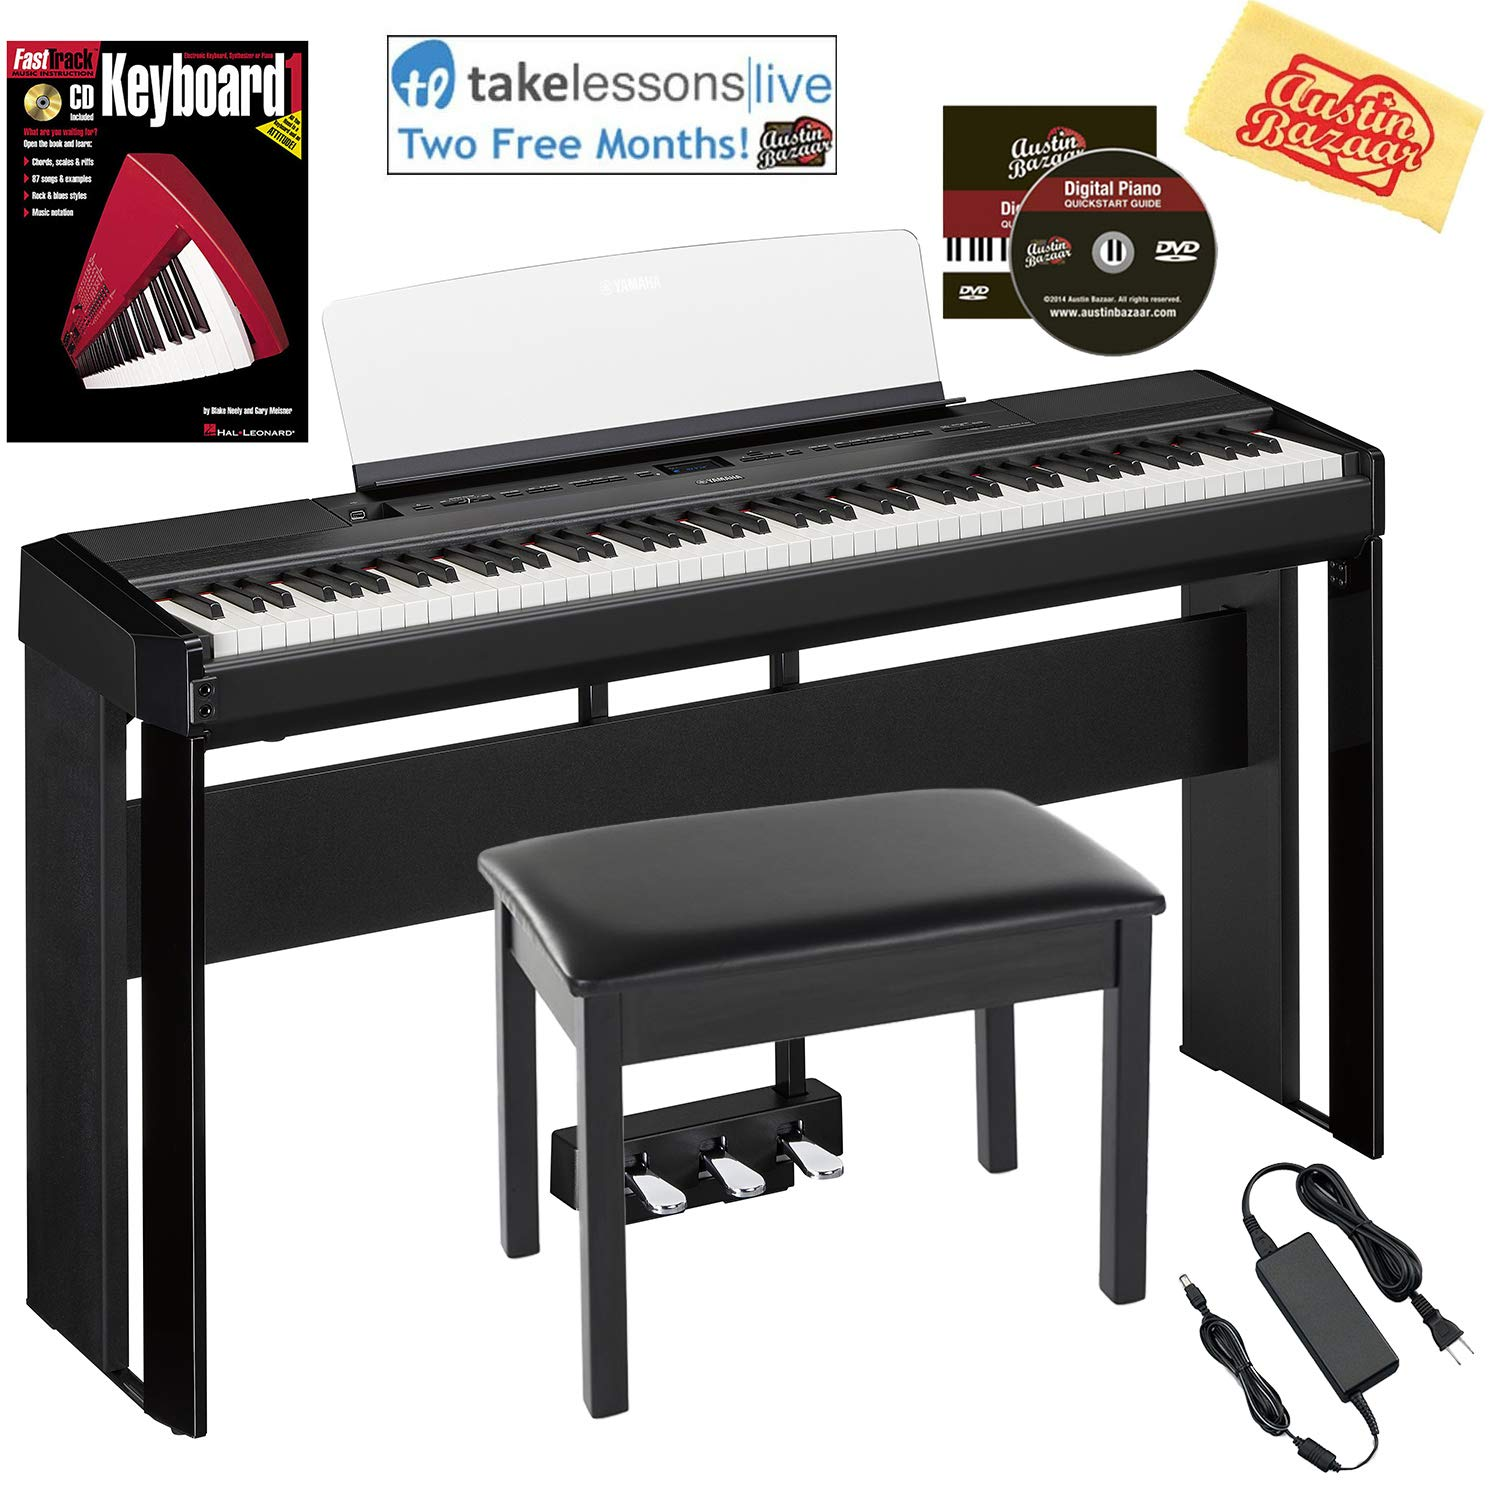 Yamaha P-515 88-Key Digital Piano - Black Bundle with Yamaha L-515 Stand, LP-1 Pedal, Furniture Bench, Dust Cover, Instructional Book, Online Lessons, Austin Bazaar Instructional DVD, and Polish Cloth P515B-COMBO-PRO